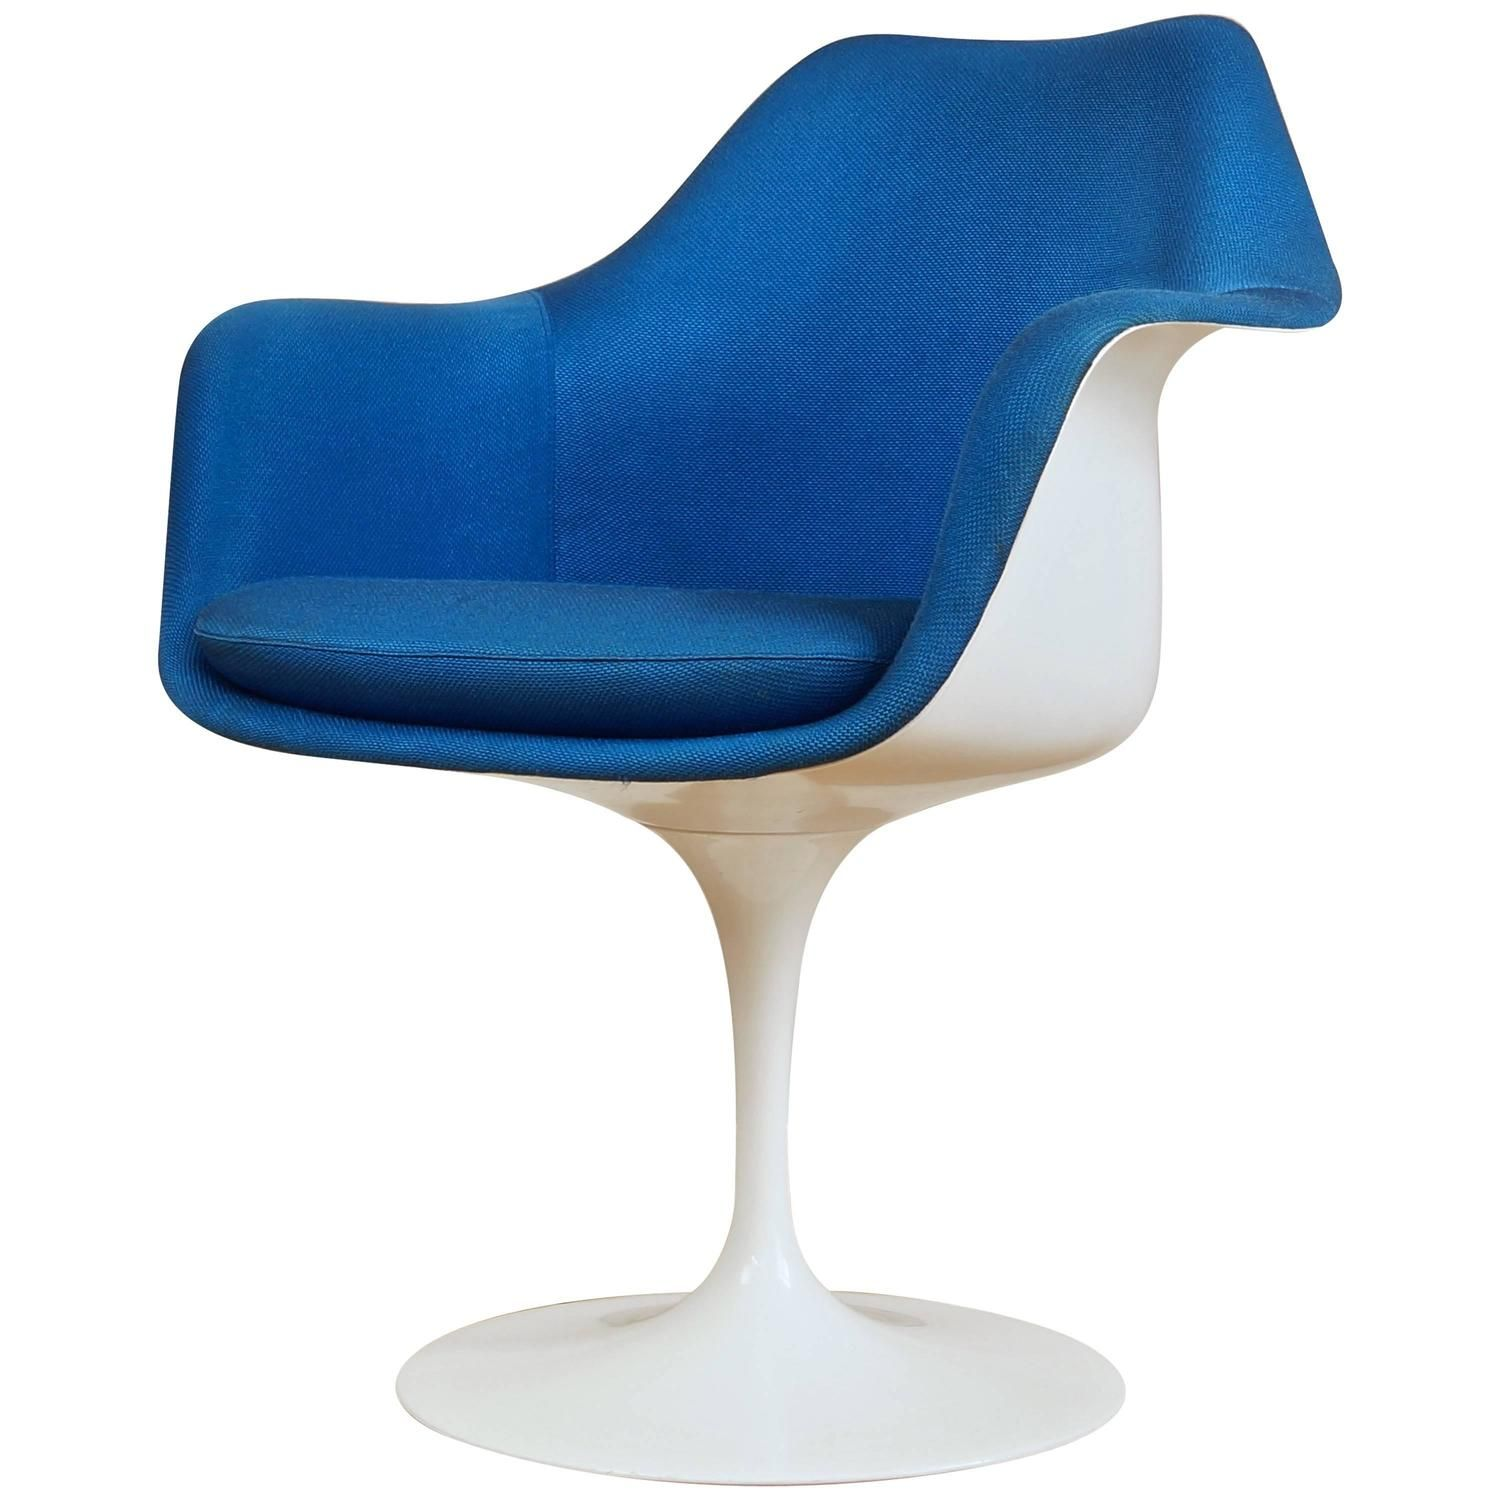 Vintage Tulip Chair / Armchair By Eero Saarinen For Knoll, Blue Upholstery